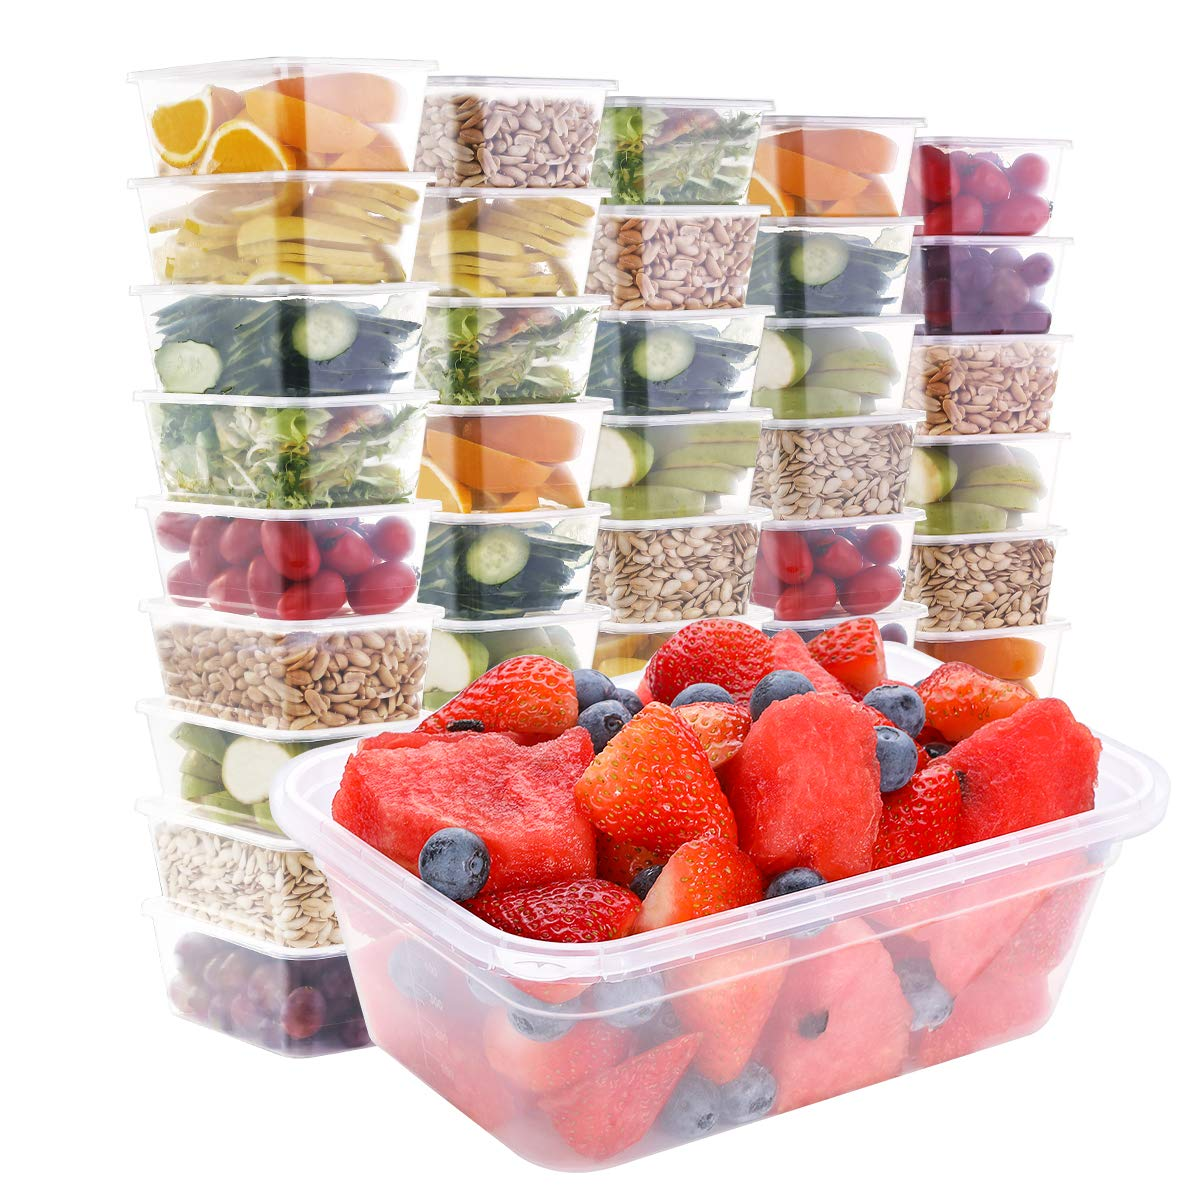 50pk,25oz Food Storage Containers with Lids Food Containers Meal Prep